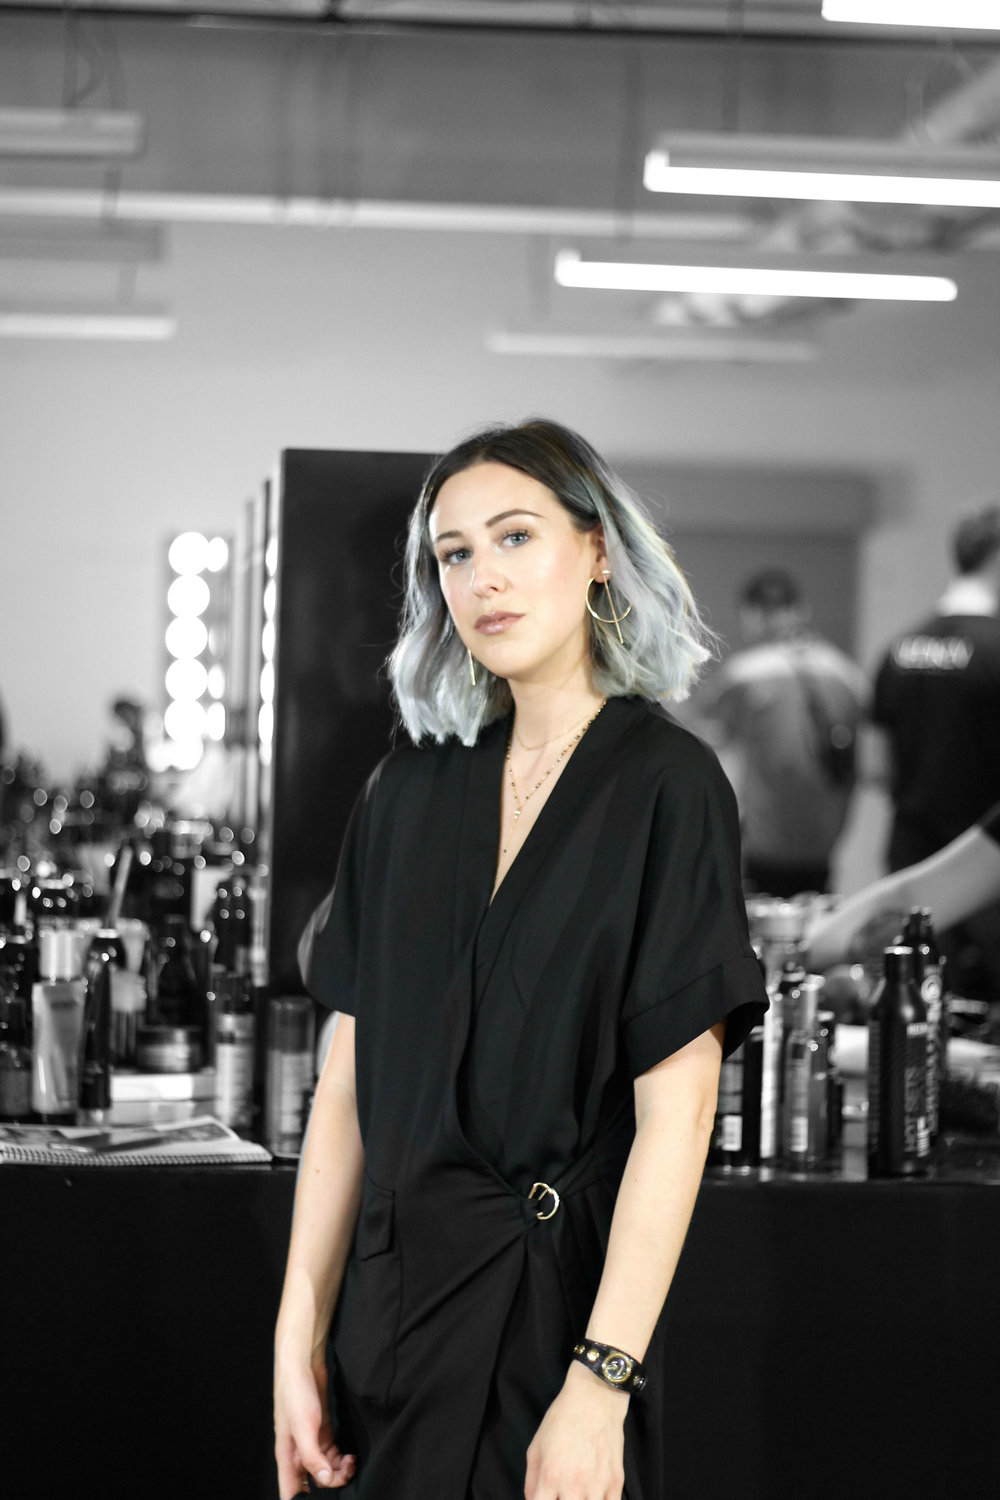 Amy Mckissock Backstage with Redken at Toronto Women's Fashion Week